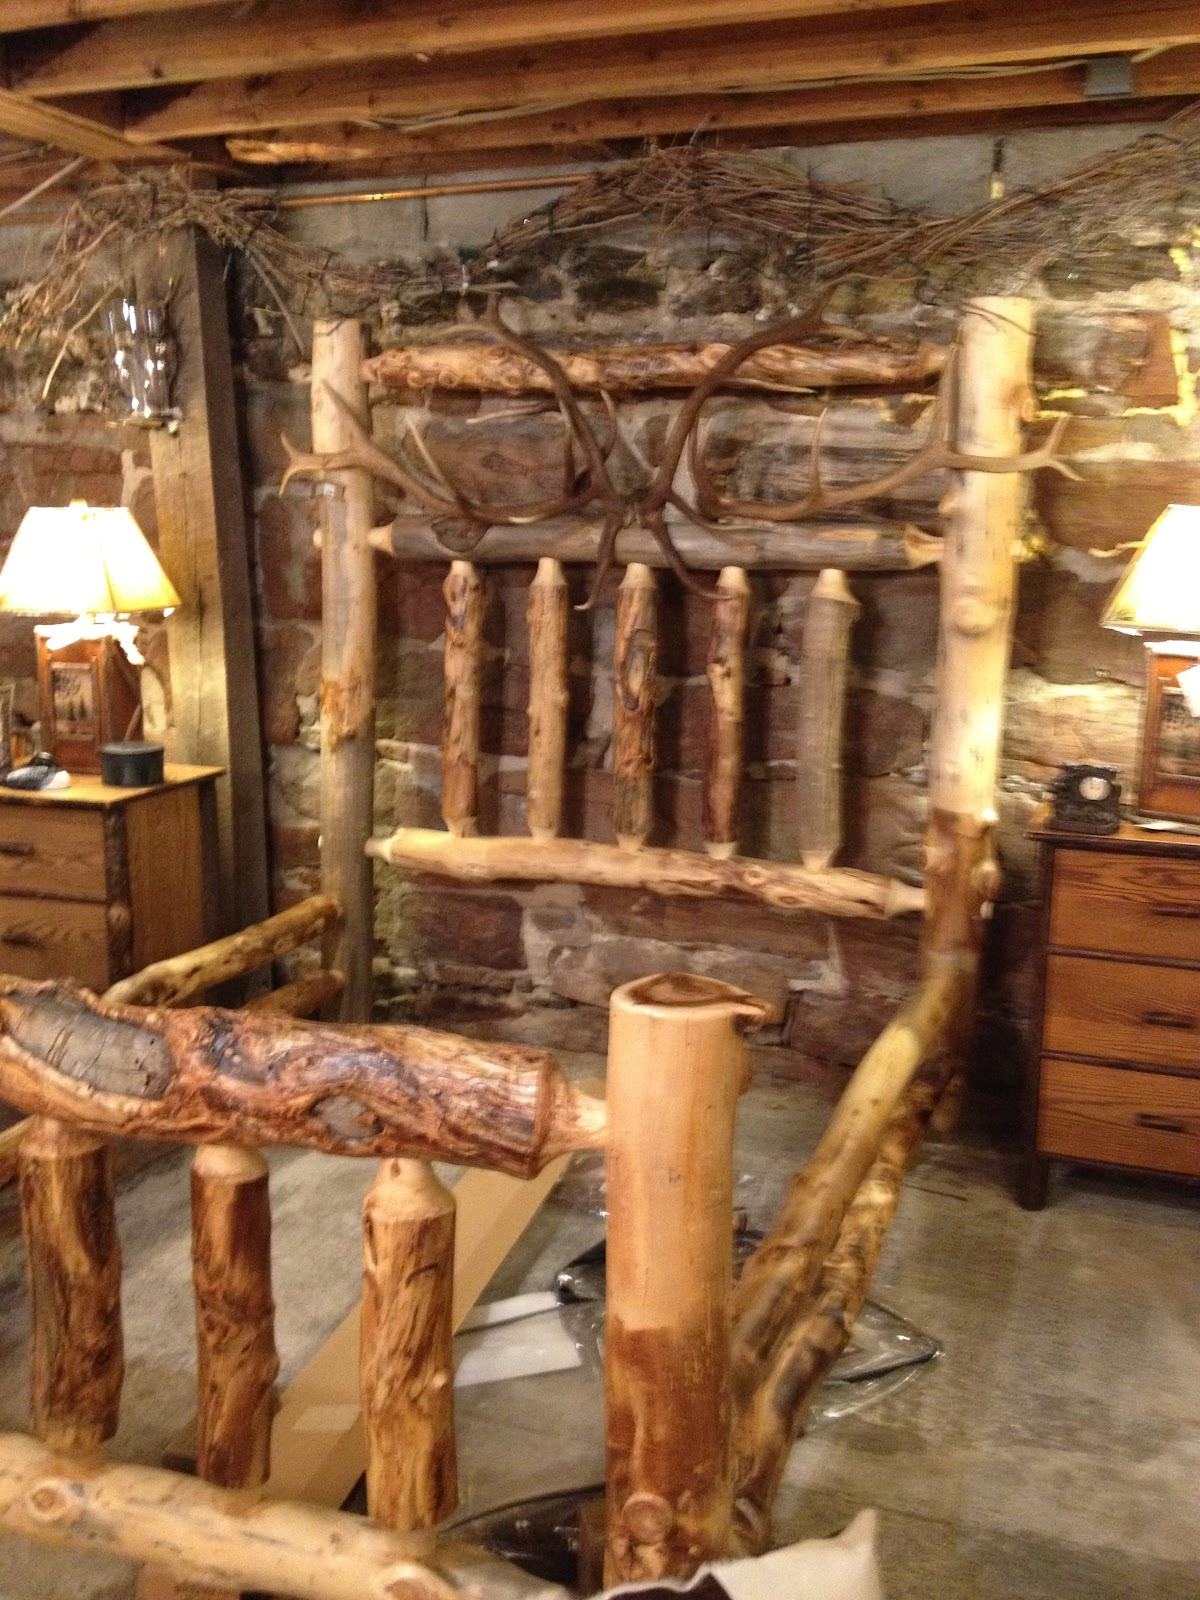 First Is A Rustic Bed Frame For Sale In North Creek Fashioned Traditional Adirondack Style Yuck I Mean Do Really Need To Be Poking My Eyes Out With